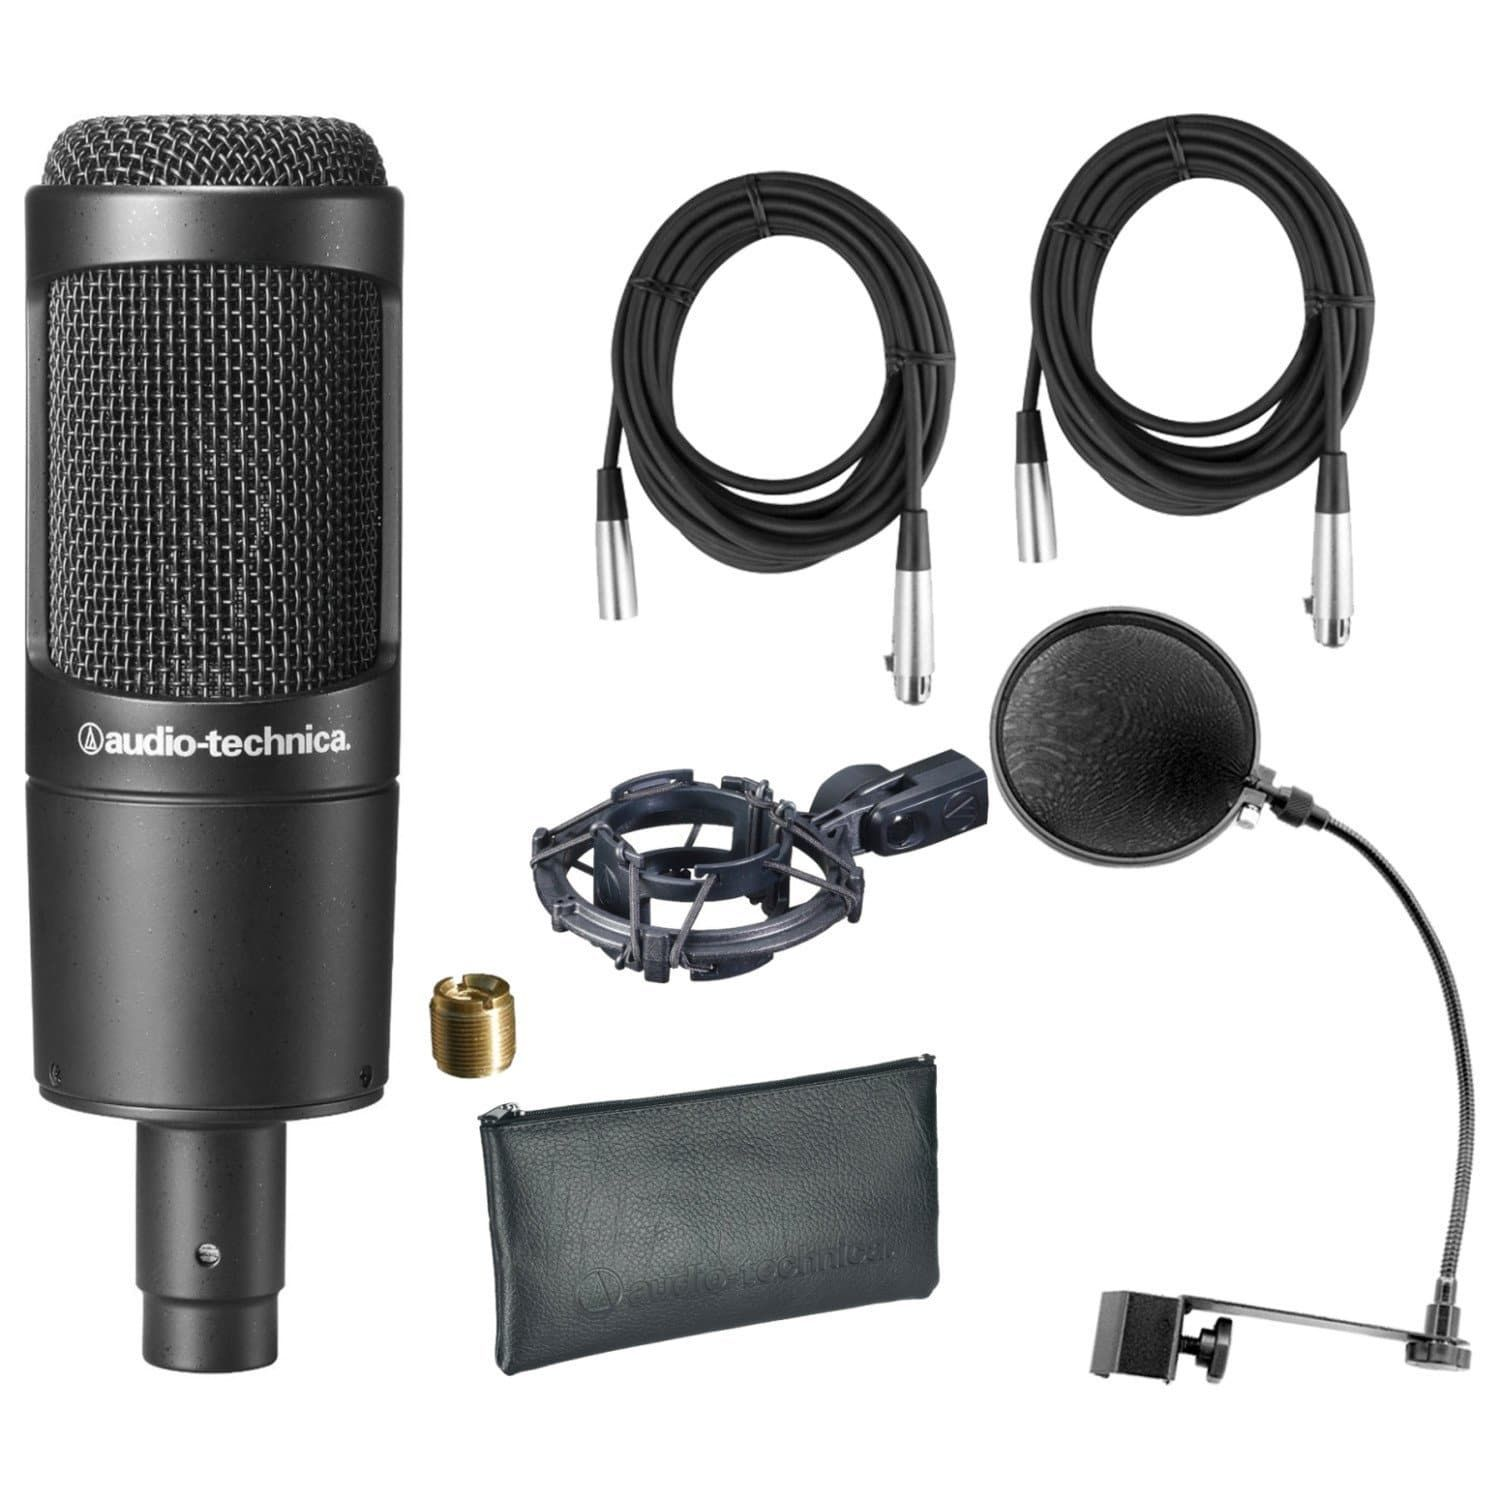 Top 10 Best Usb Microphones In 2021 Topreviewproducts Usb Microphone Microphone Microphones